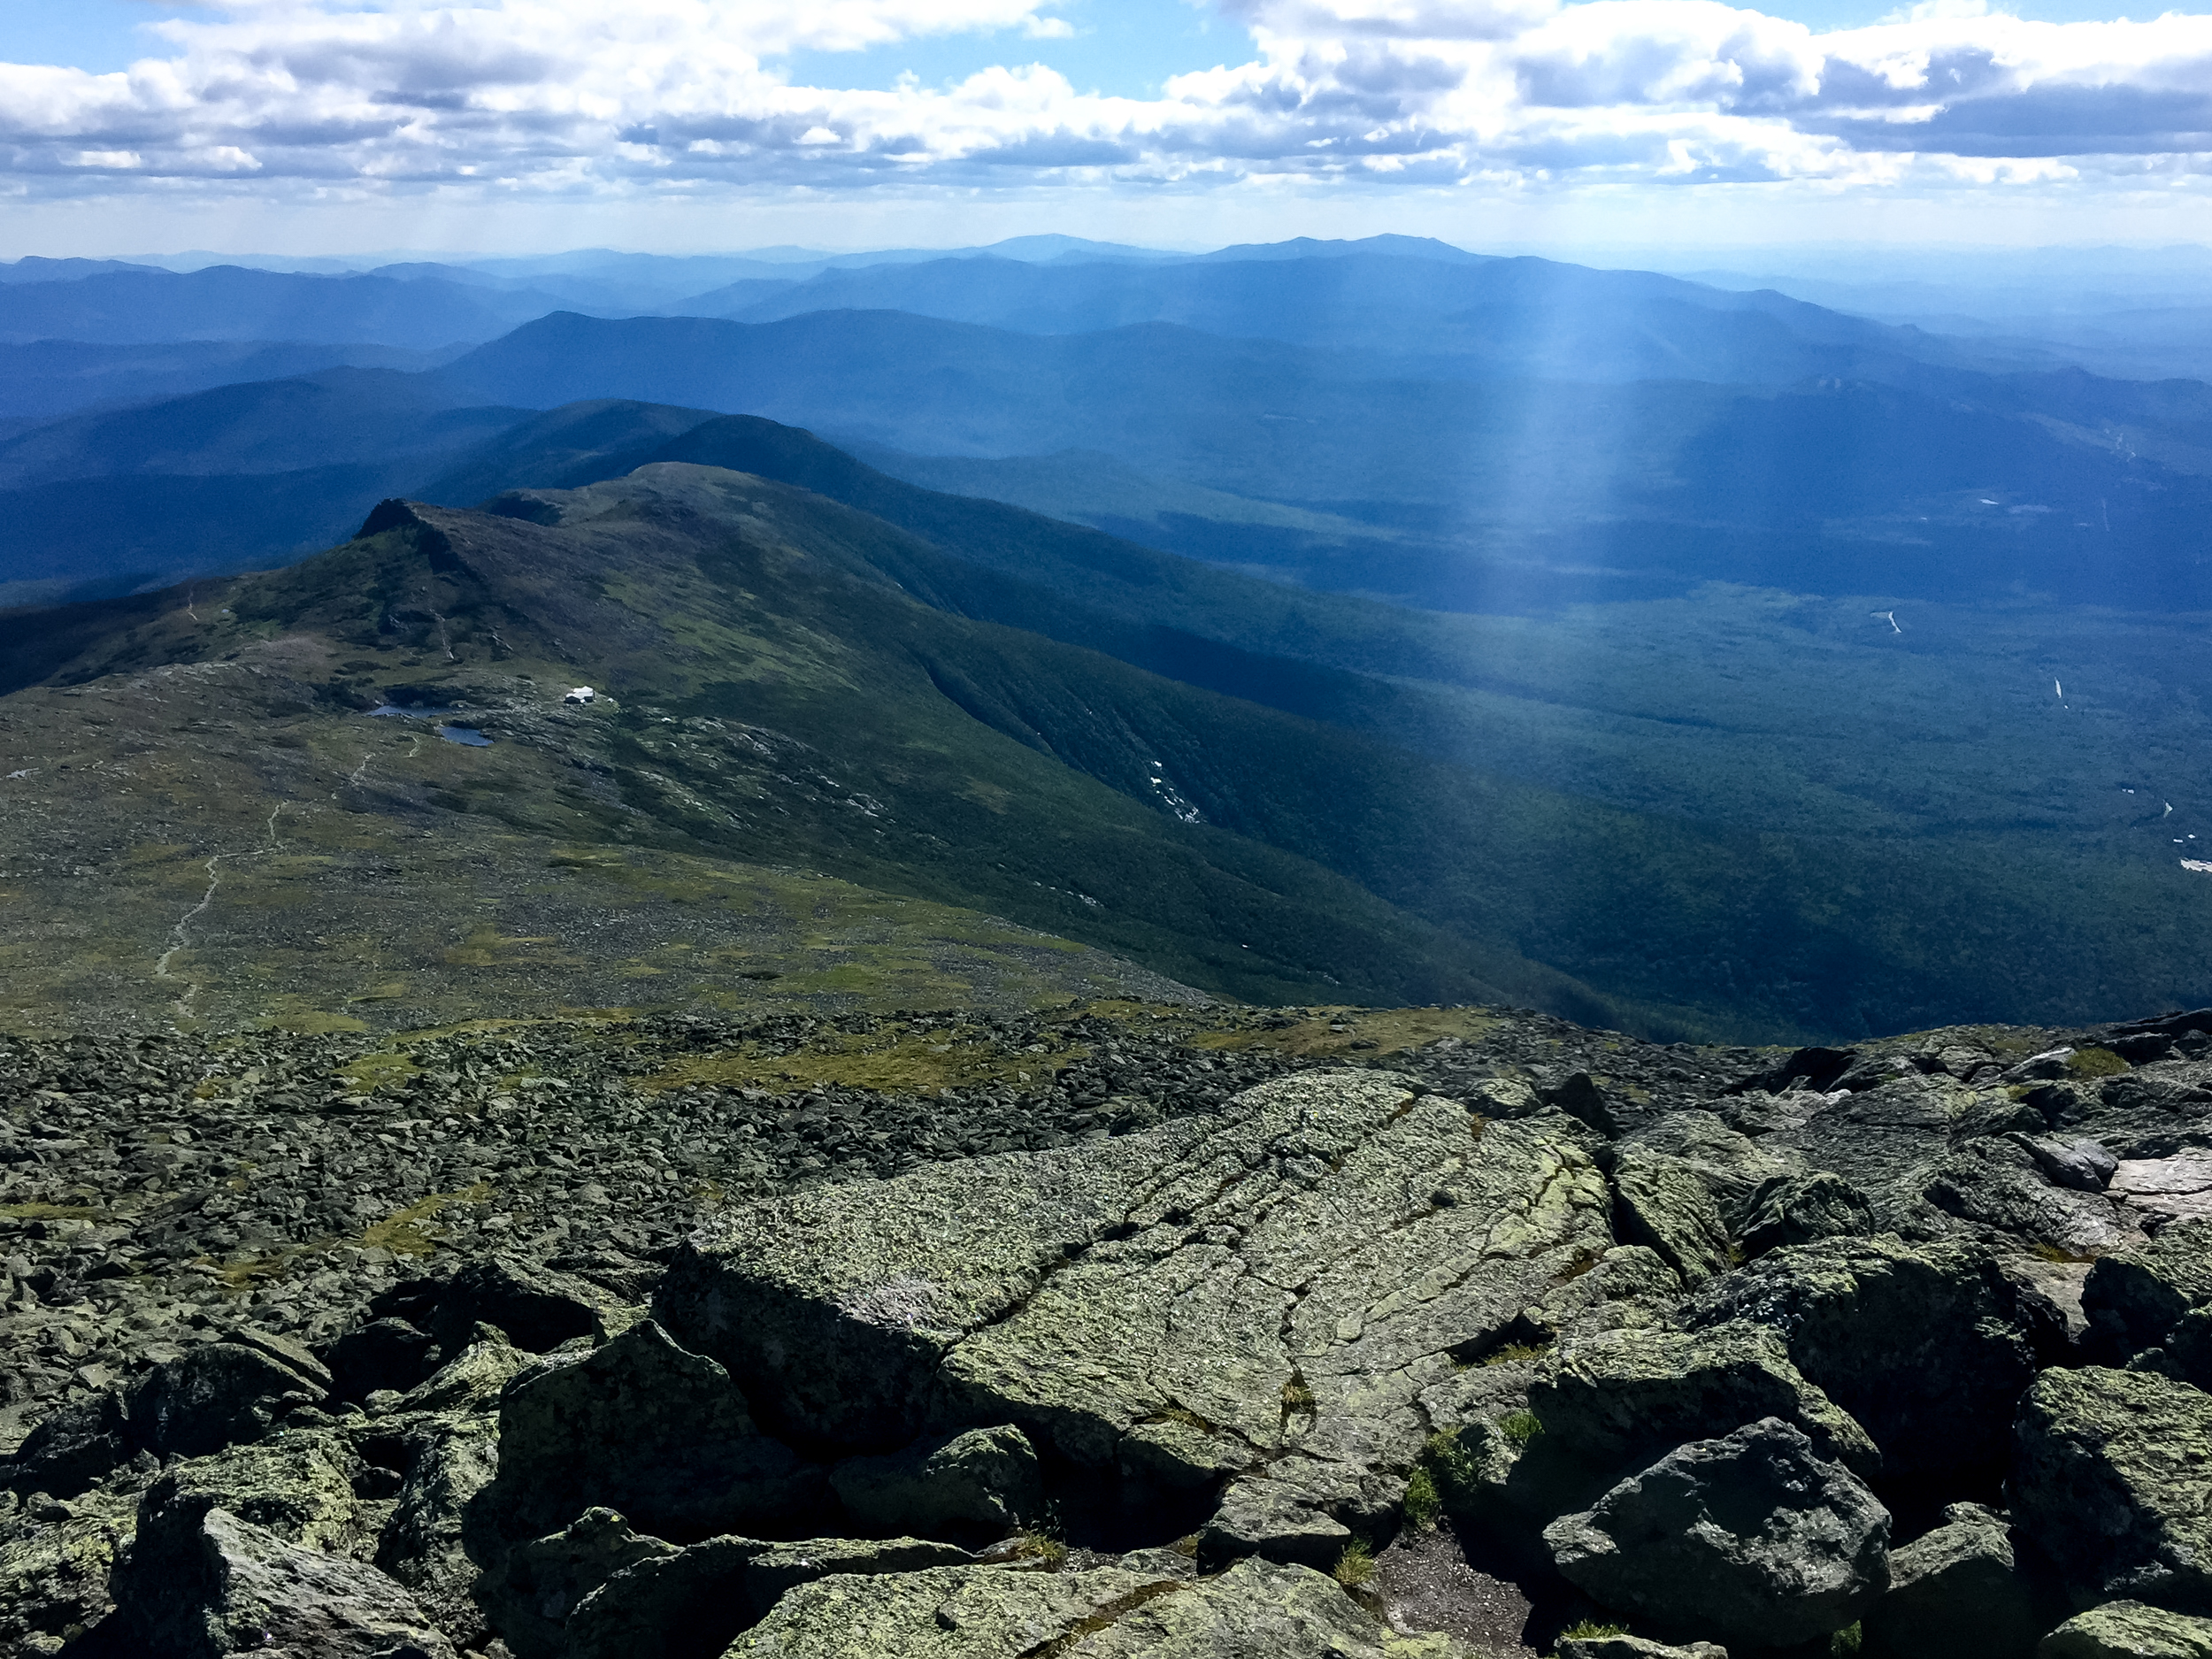 Looking back on the Southern Presidentials from Washington.